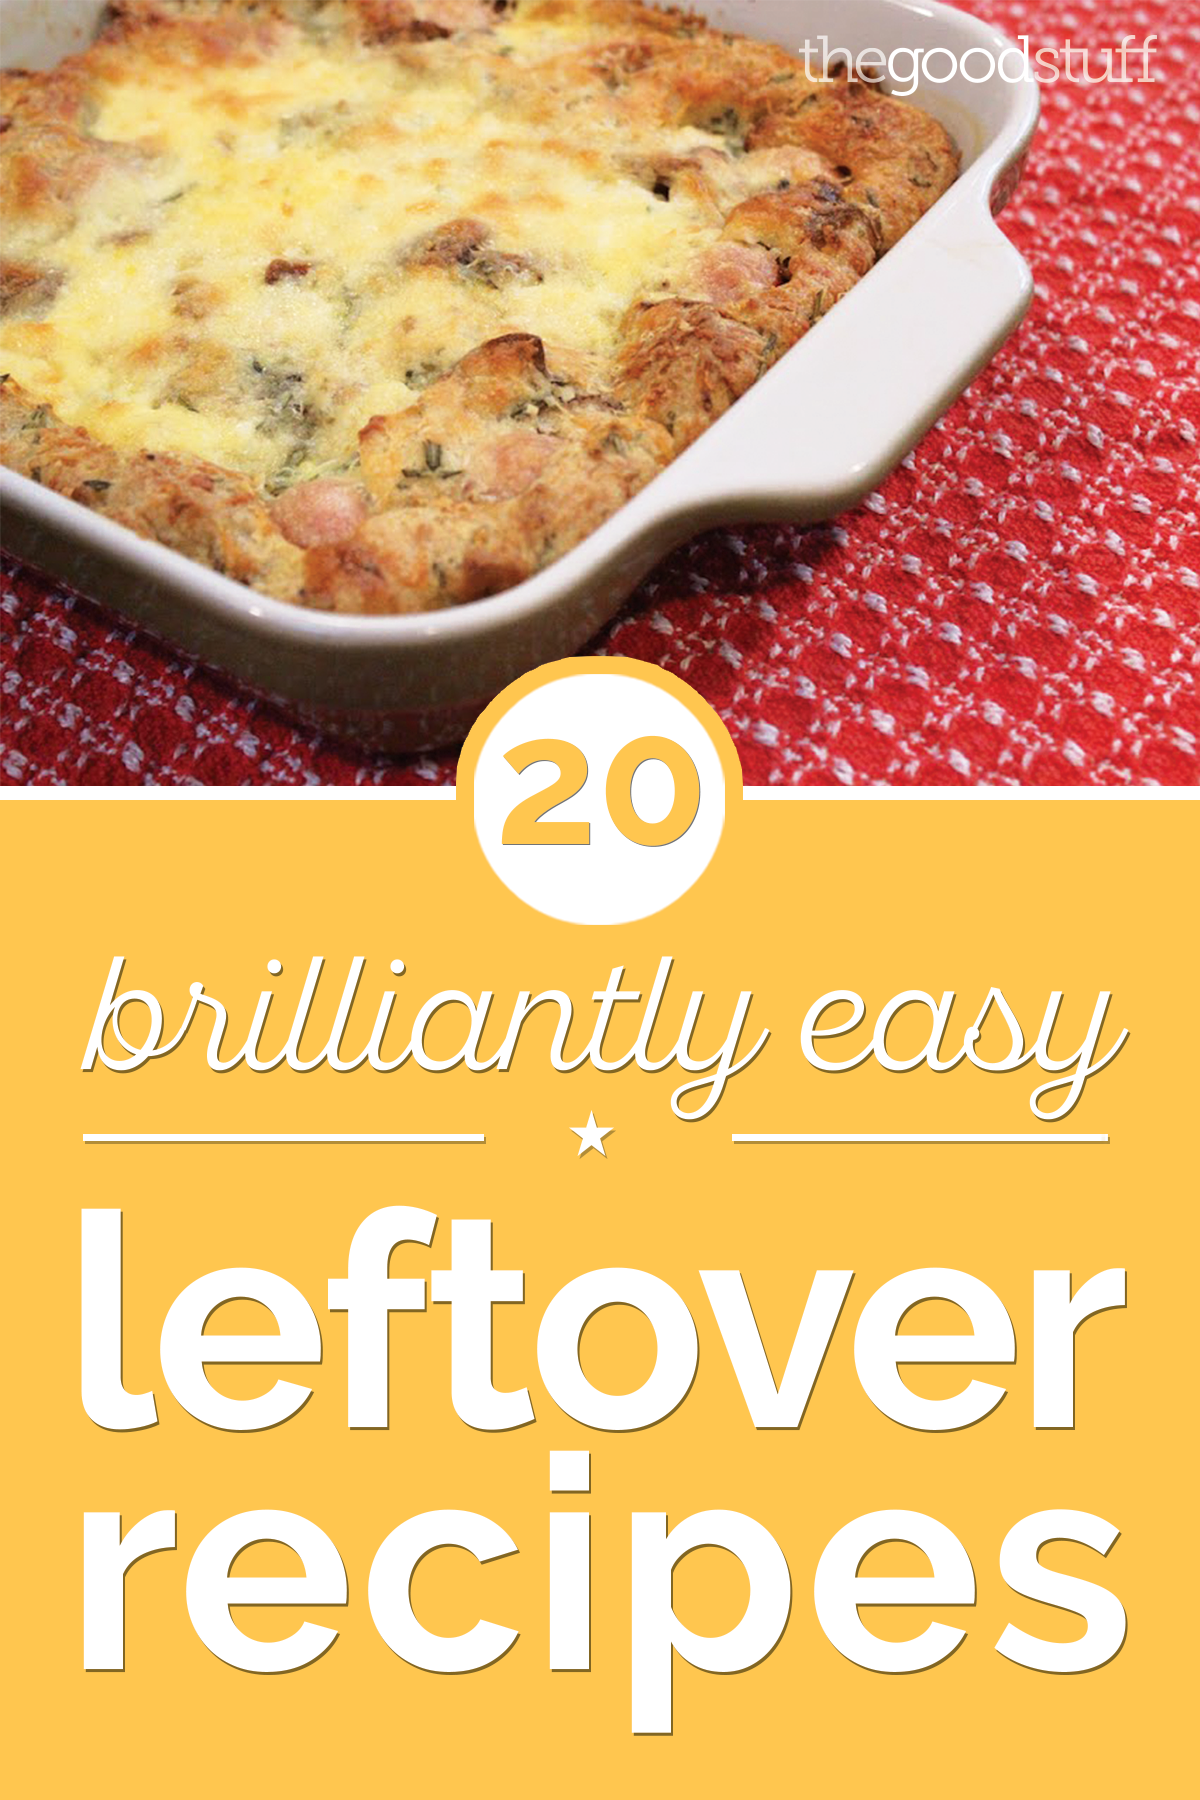 20 Brilliantly Easy Leftover Recipes | thegoodstuff